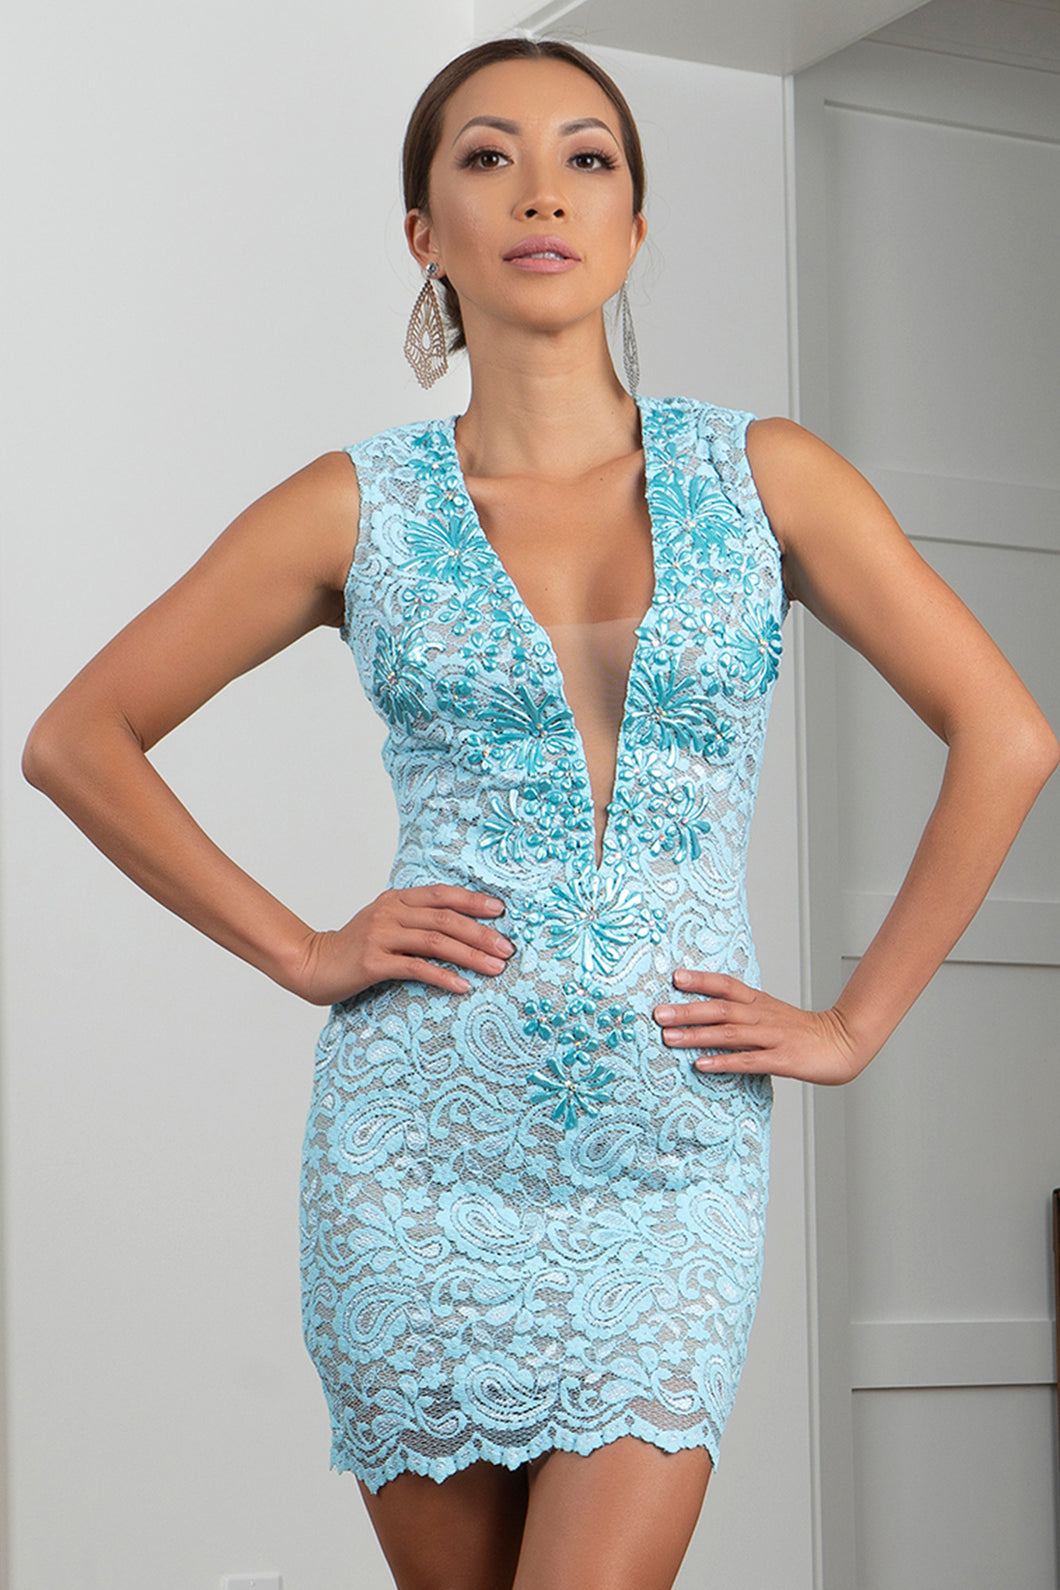 Helly Stretch Lace Aqua Cocktail Dress - BACCIO Couture